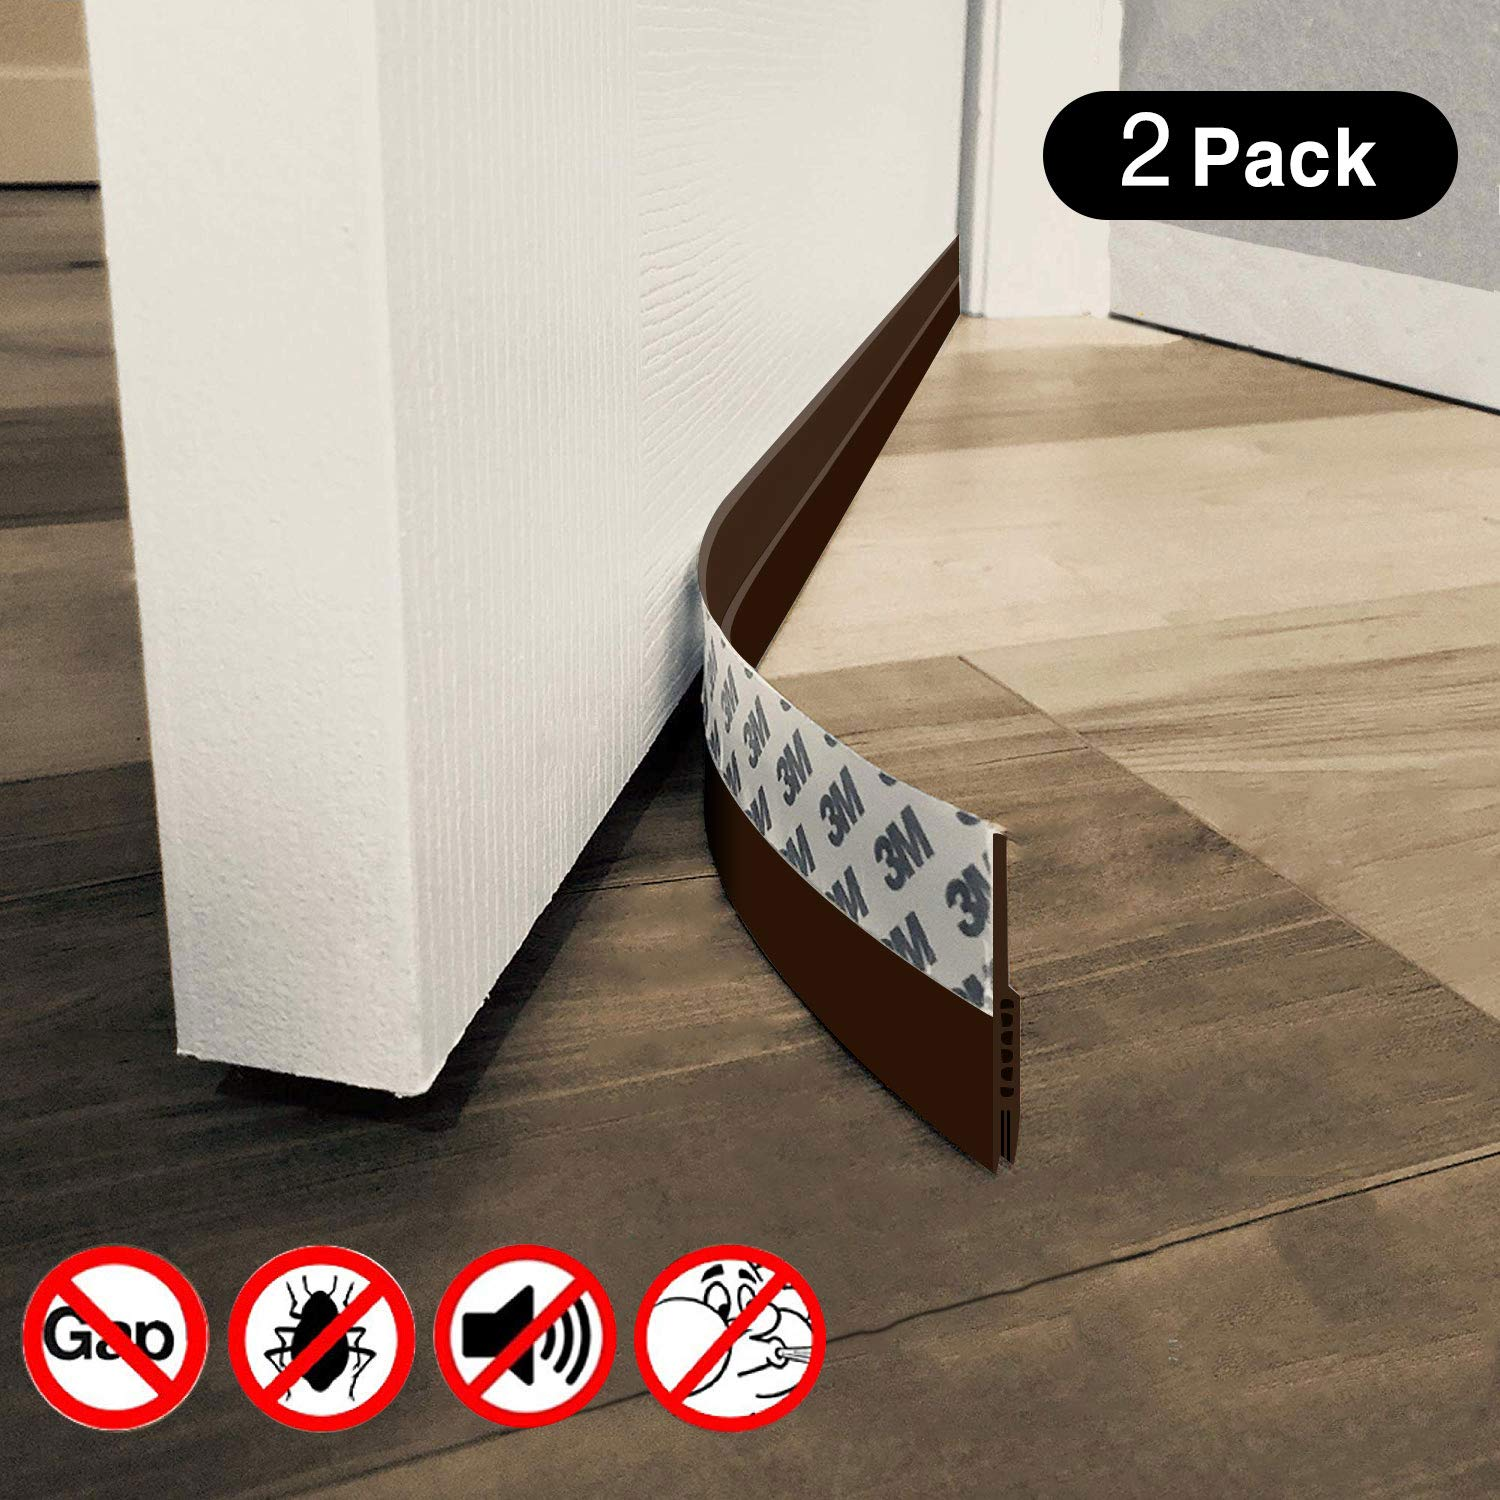 Door Draft Stopper and Blocker 2' X 39' with High Performance Silicone and 3M Strip for Soundproof, Energy Saver, and Insect Prevention, 2 Pack, Brown ProcellaTech